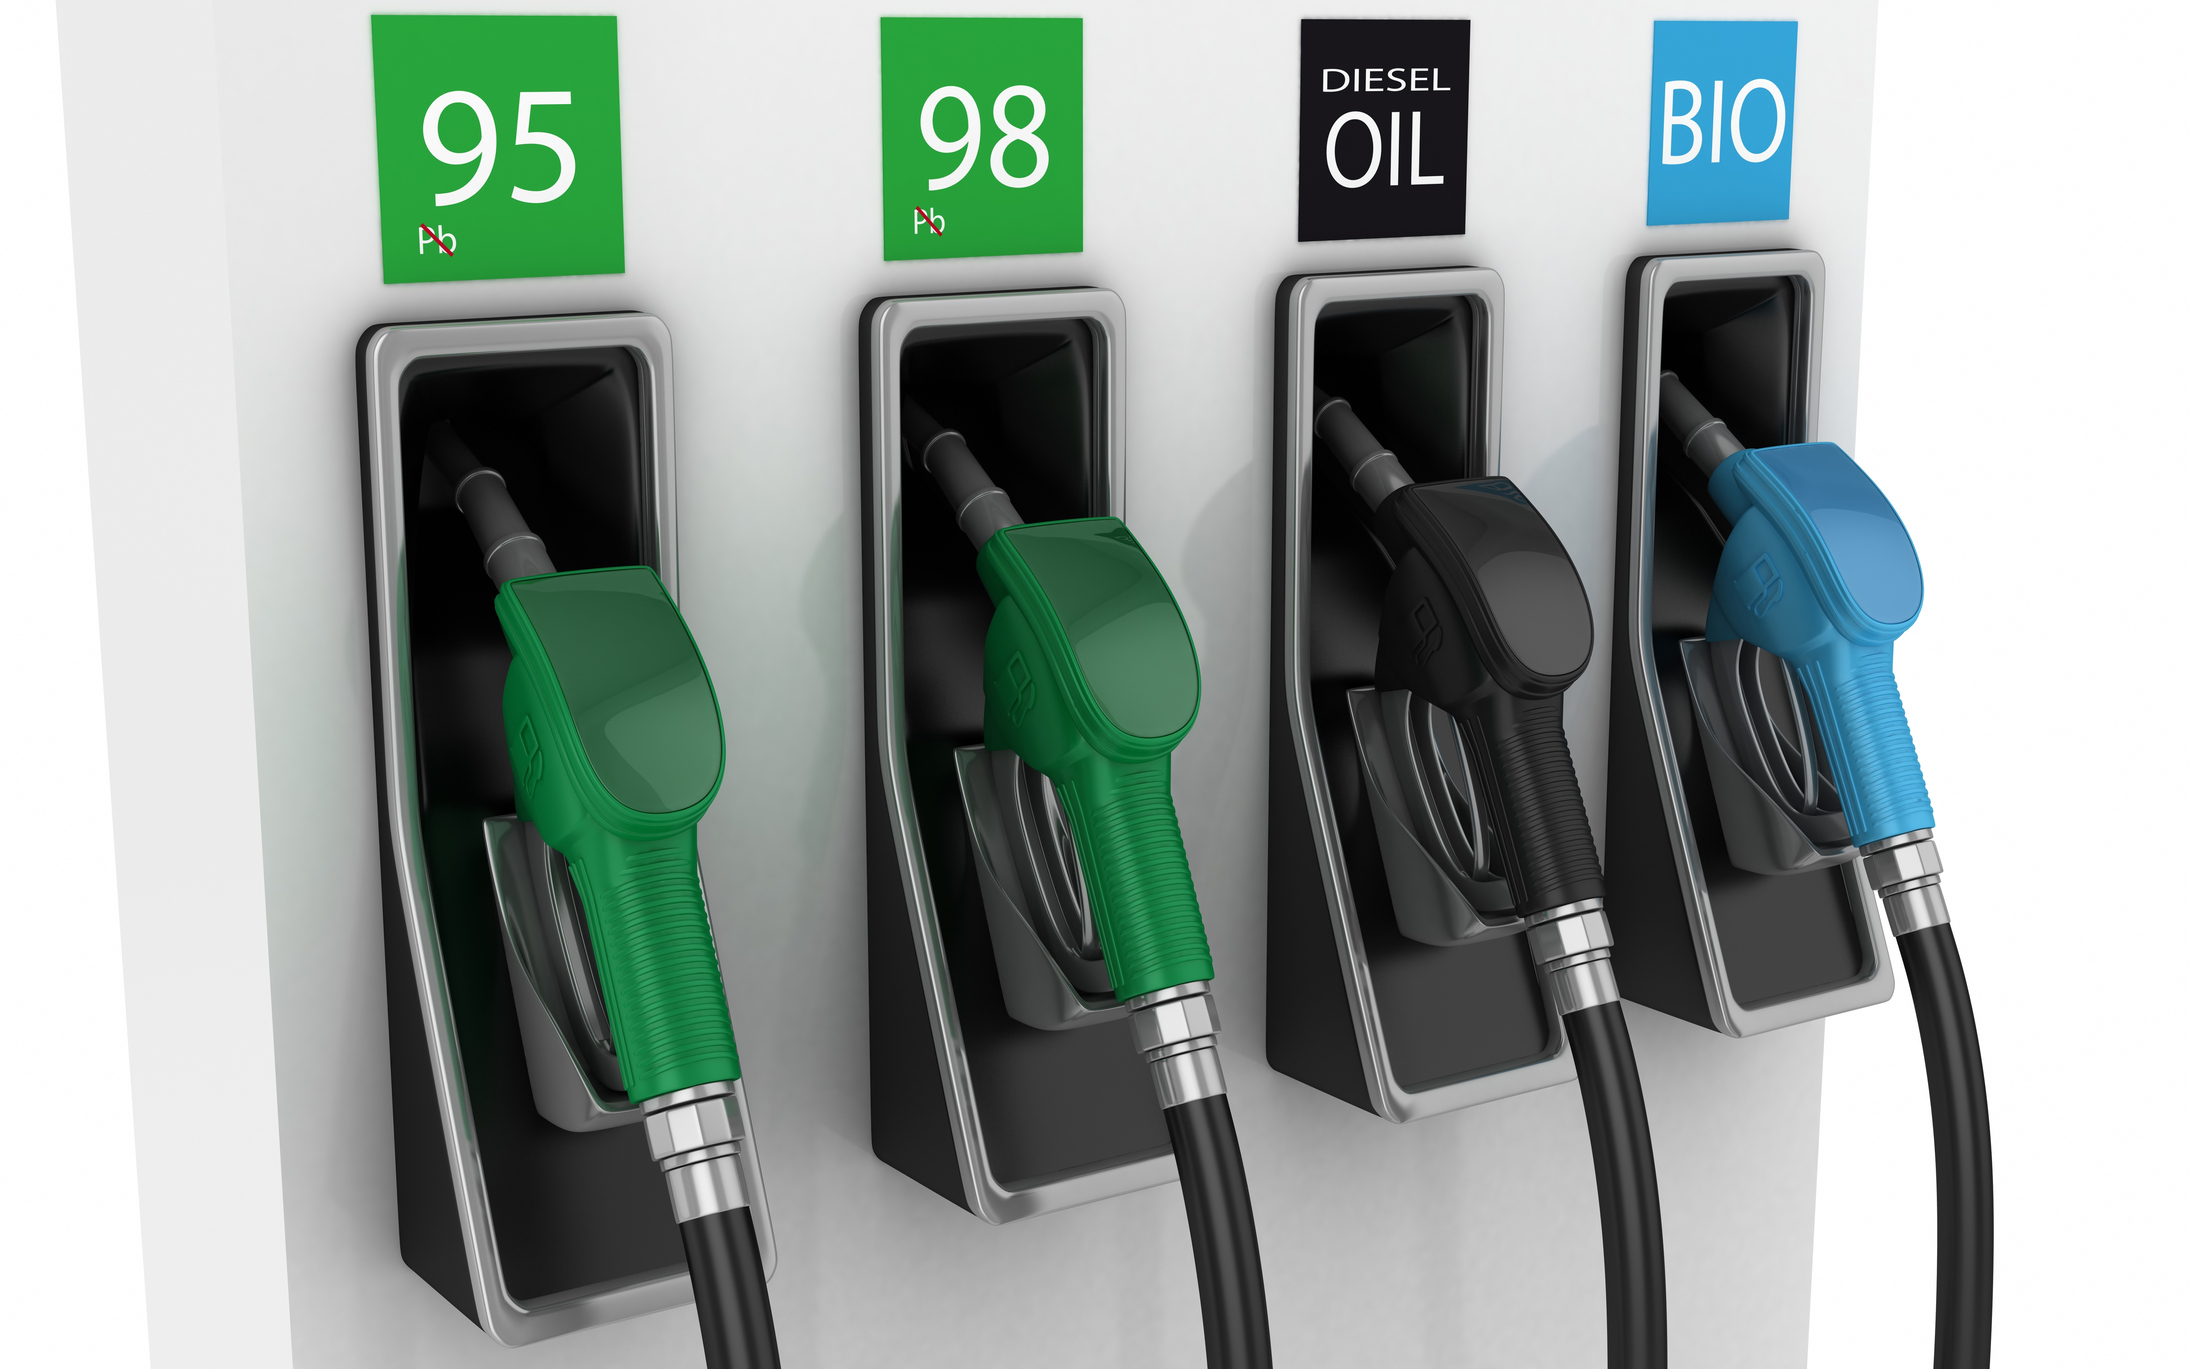 advantages and disadvantages of biofuels lovetoknow